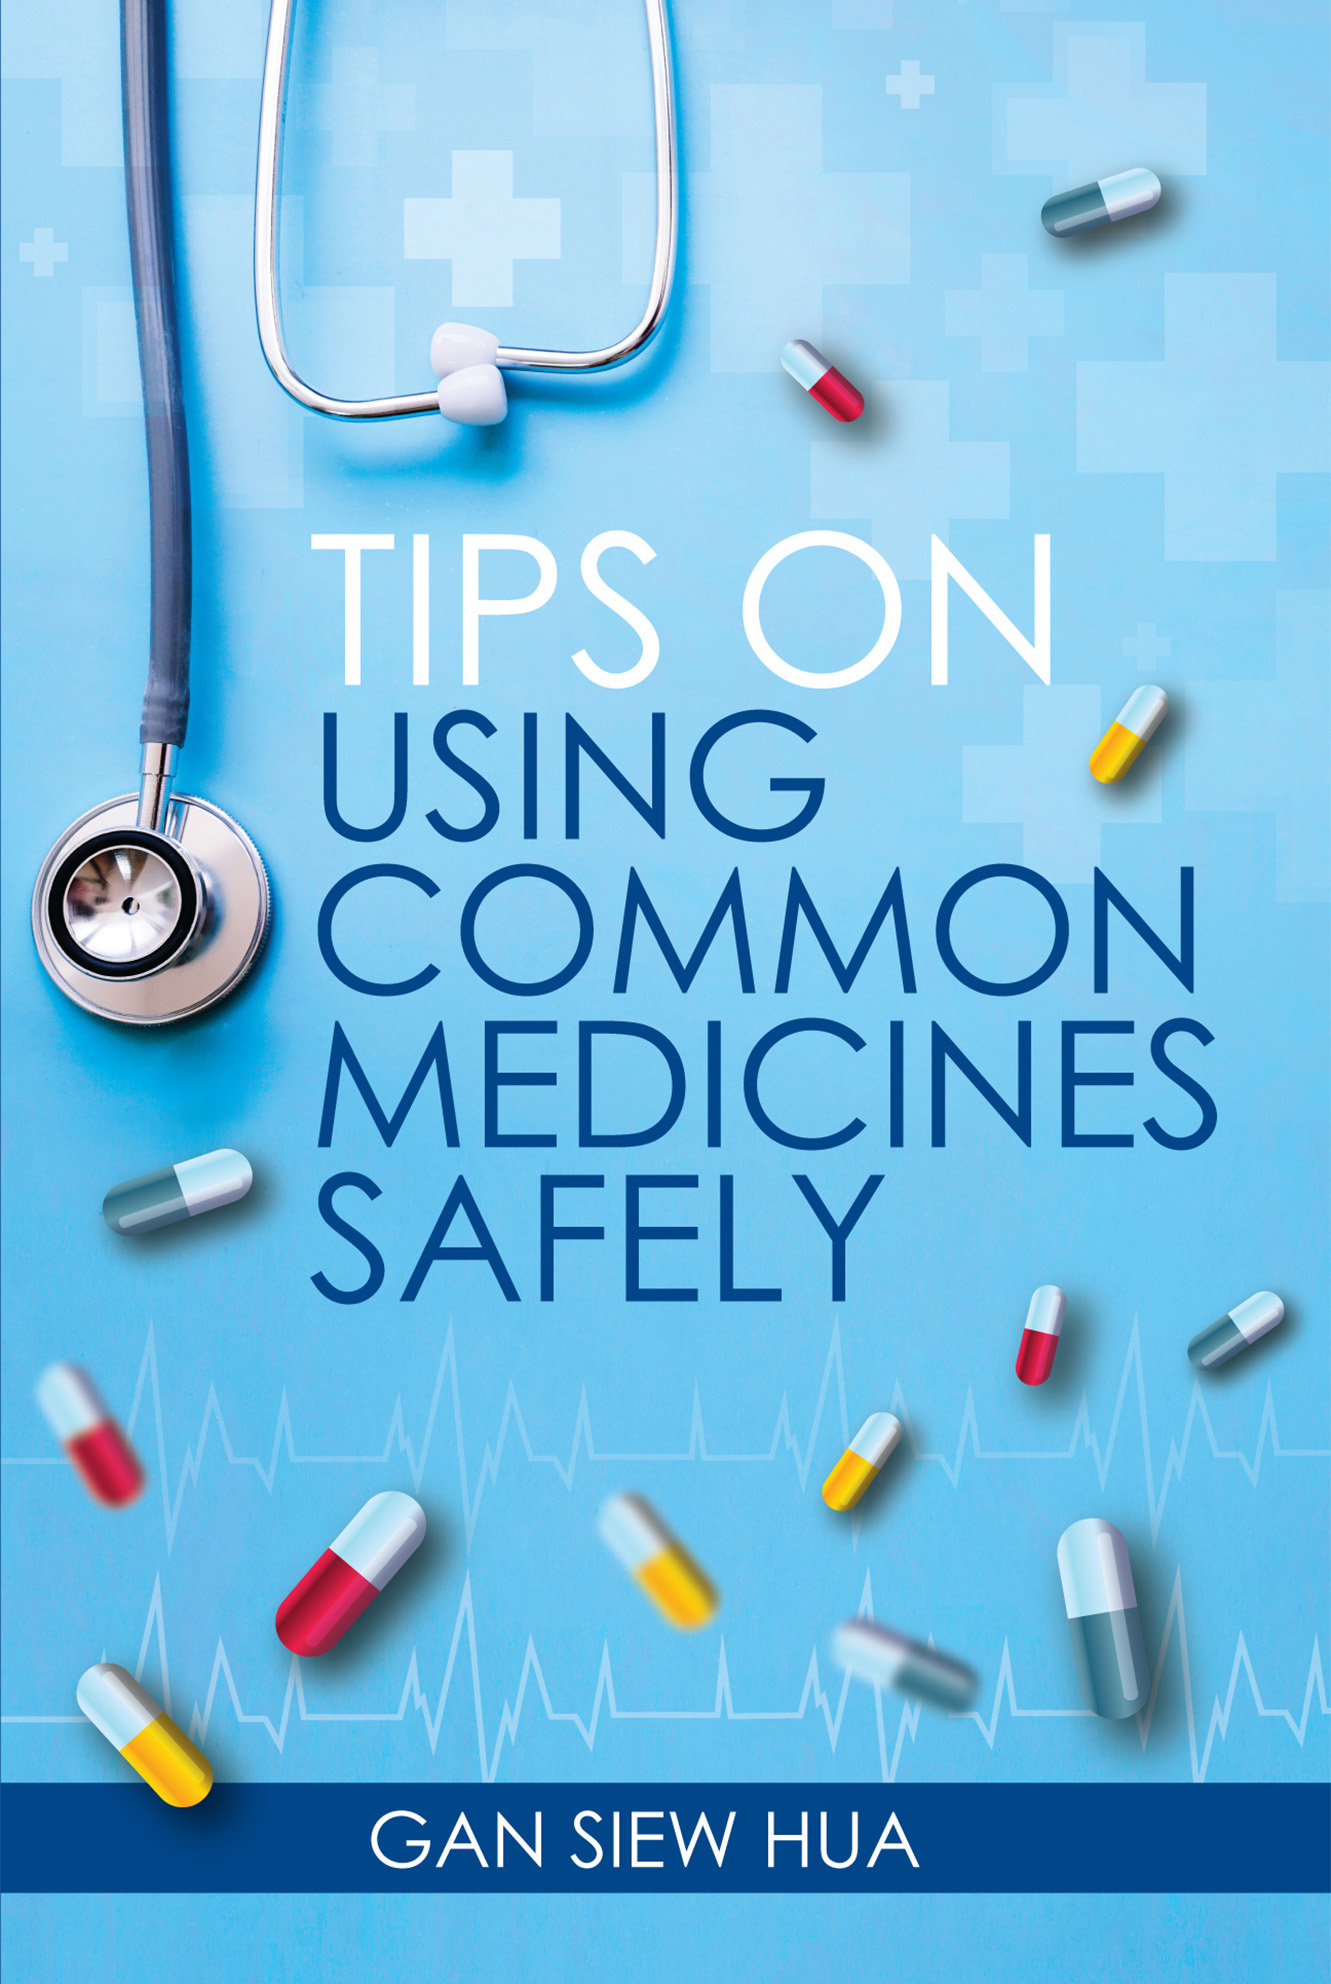 Tips on Using Common Medicines Safely.jpg